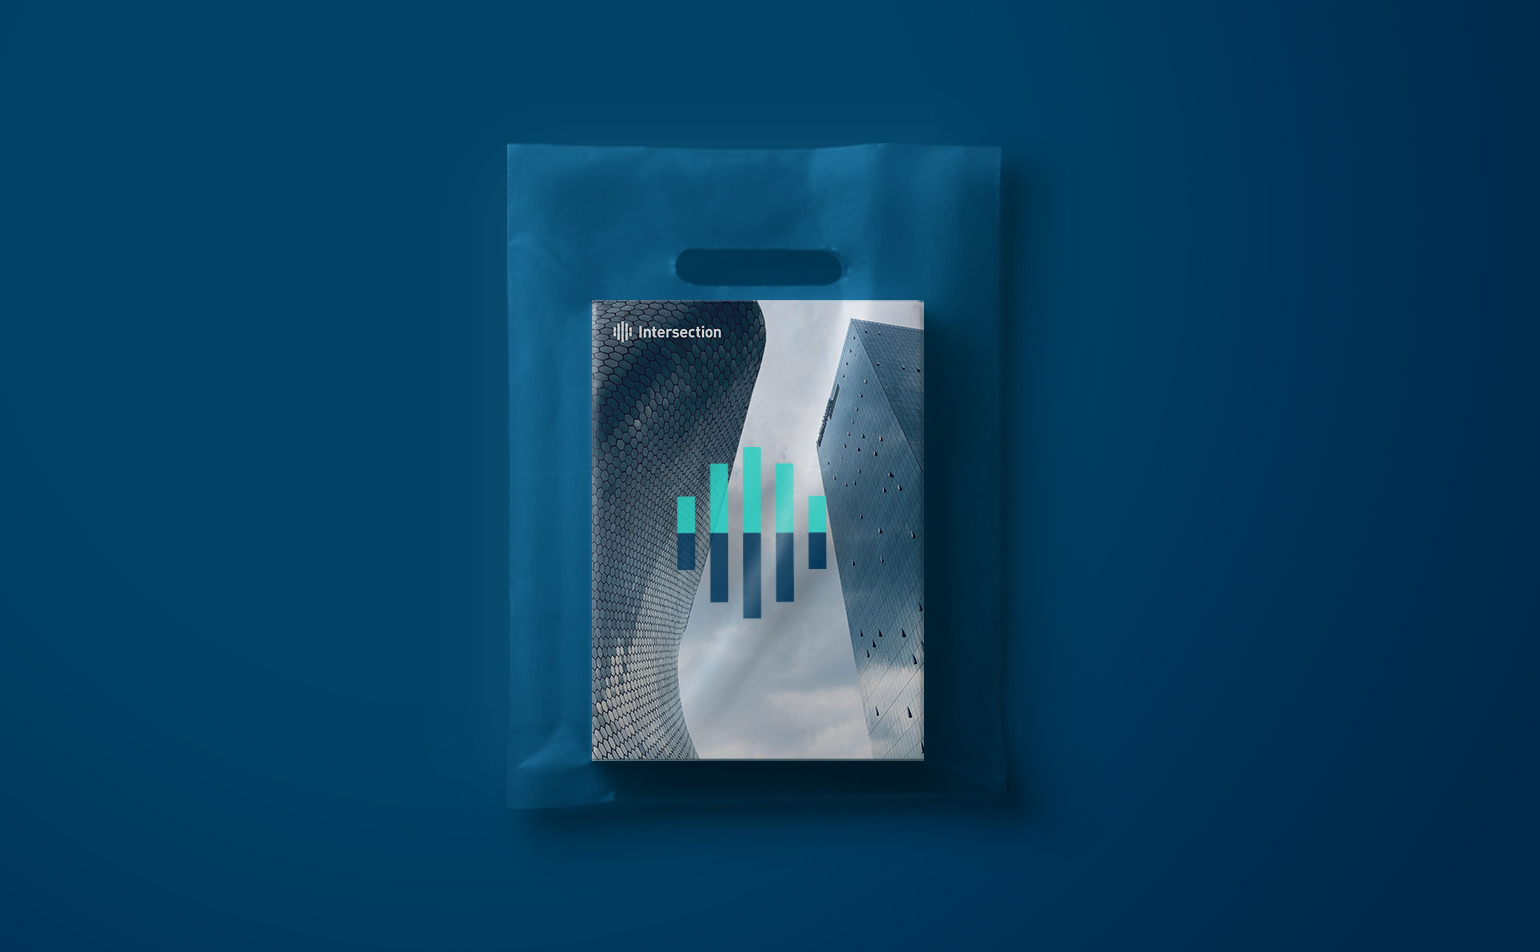 Ignyte-Branding-Agency-Intersection-Marketing-Collateral-V5-Book-Bag